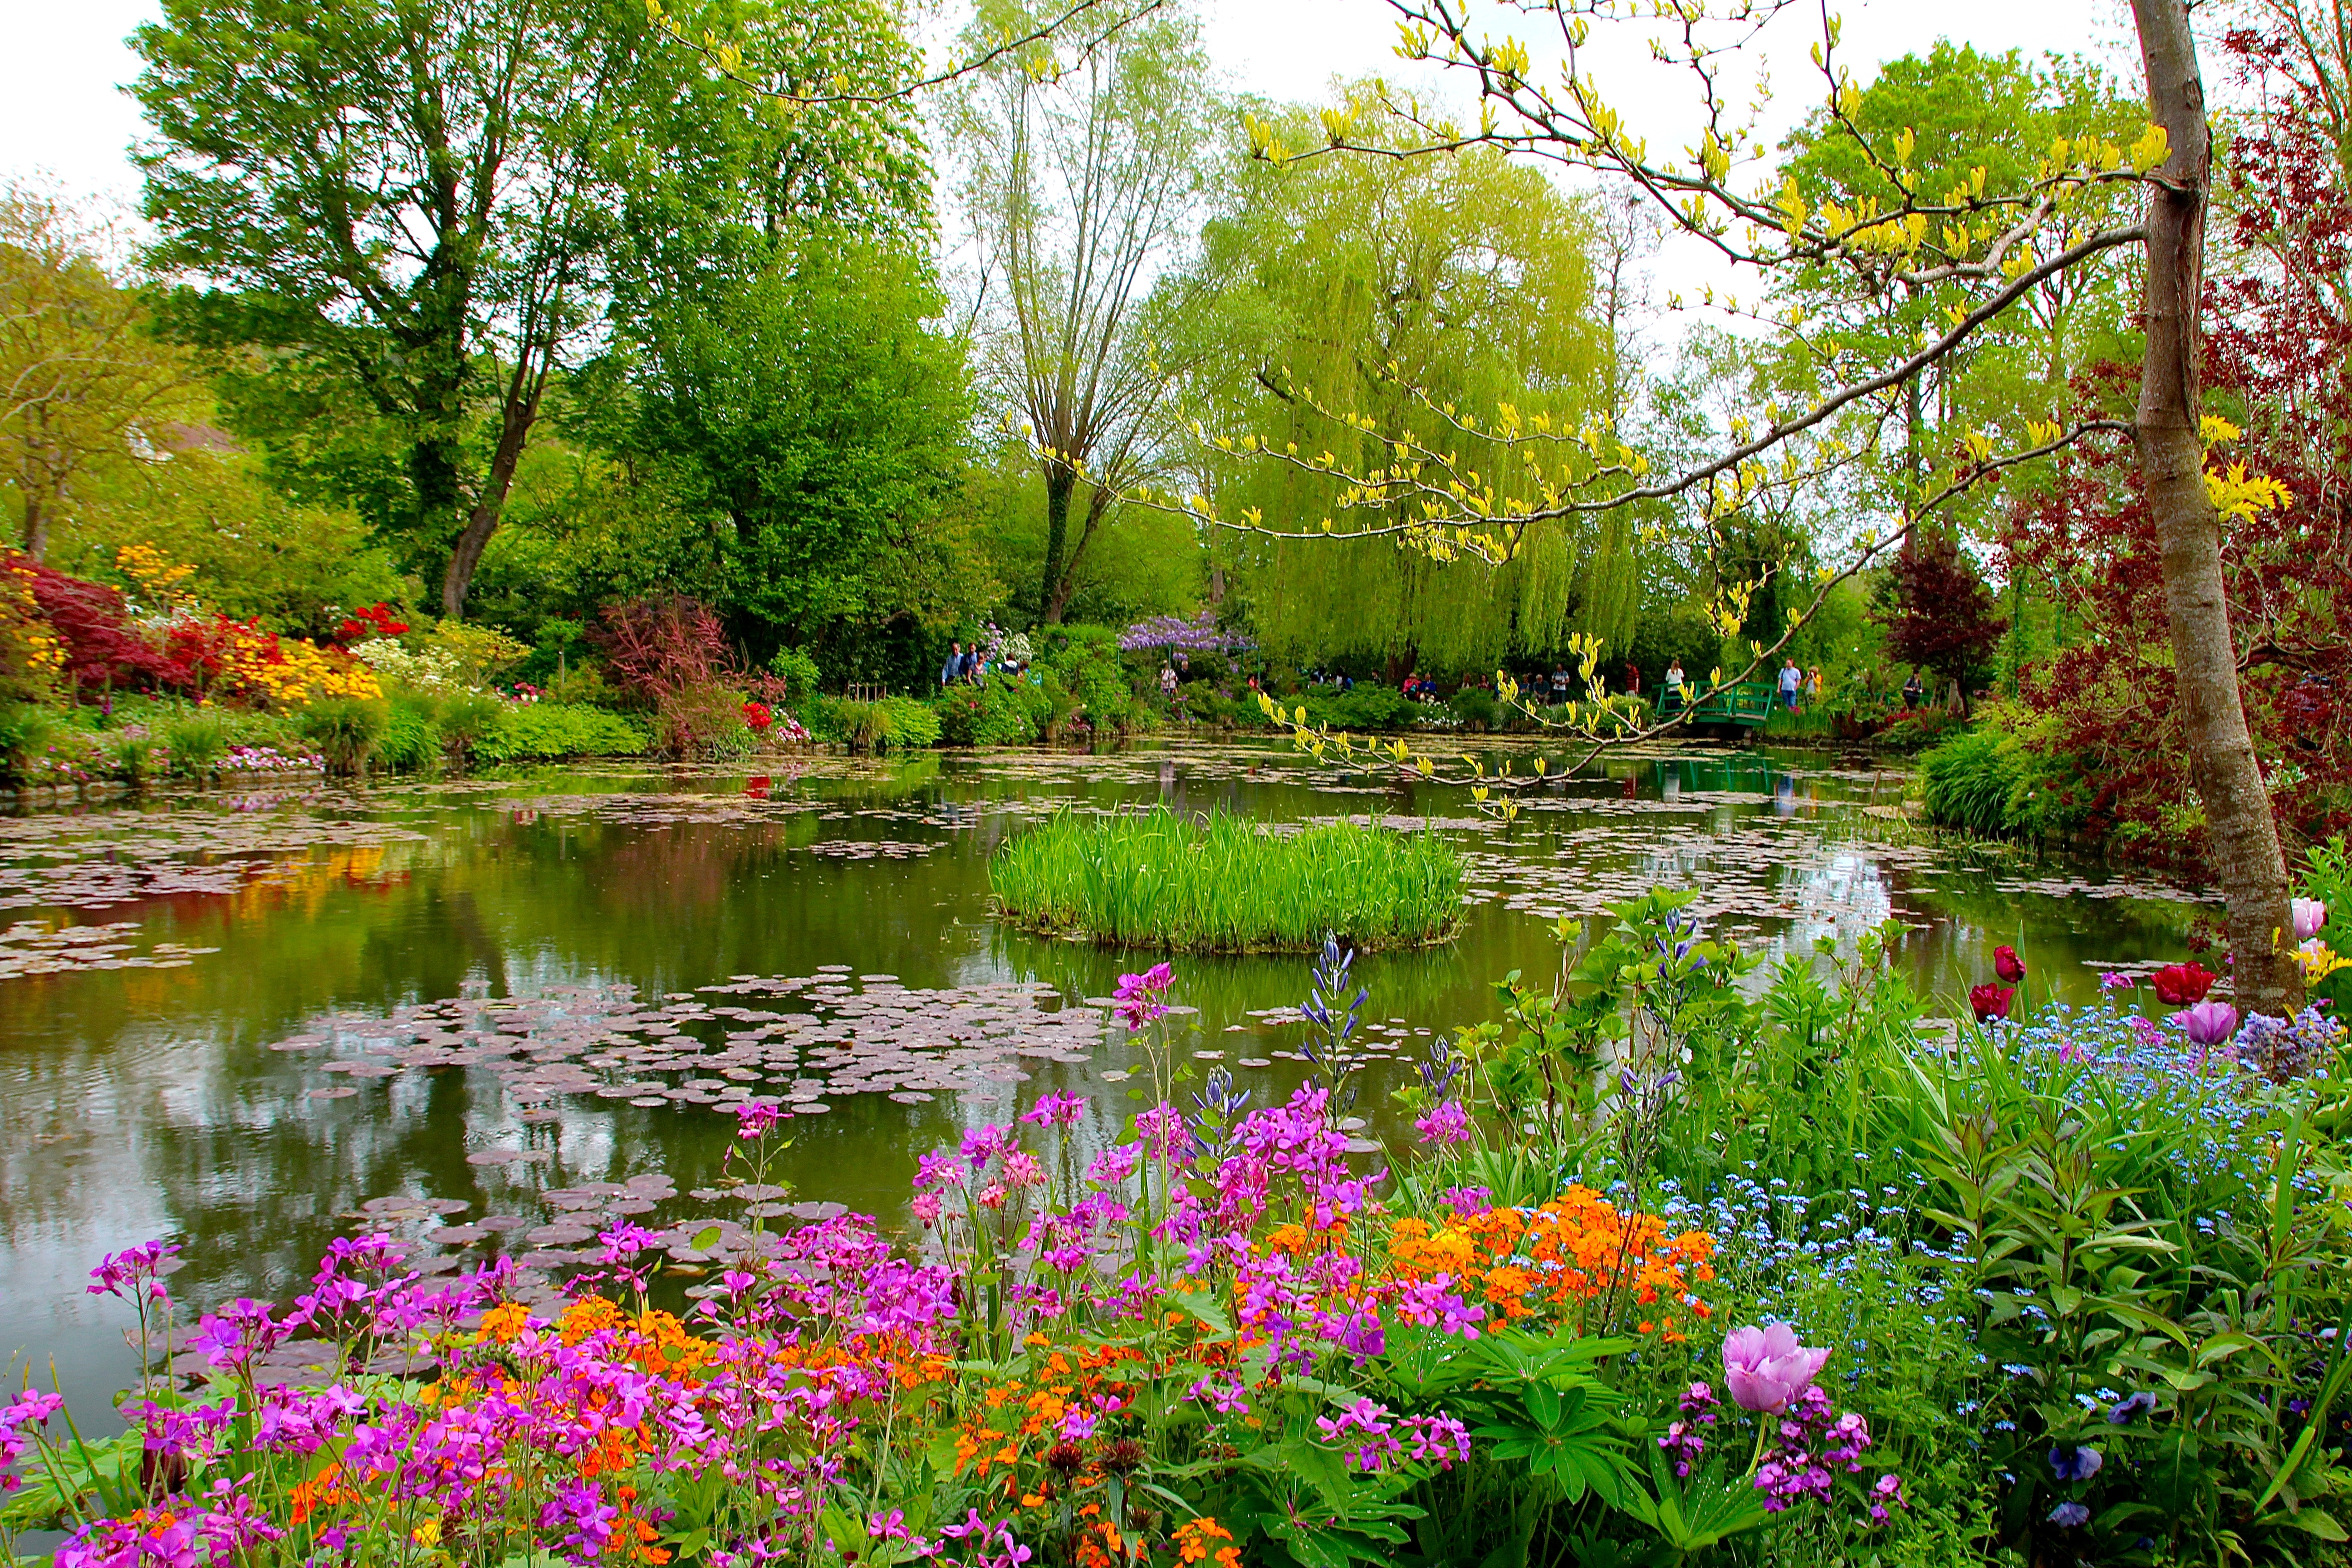 Gorgeous colors at Giverny. France. 05.09.16